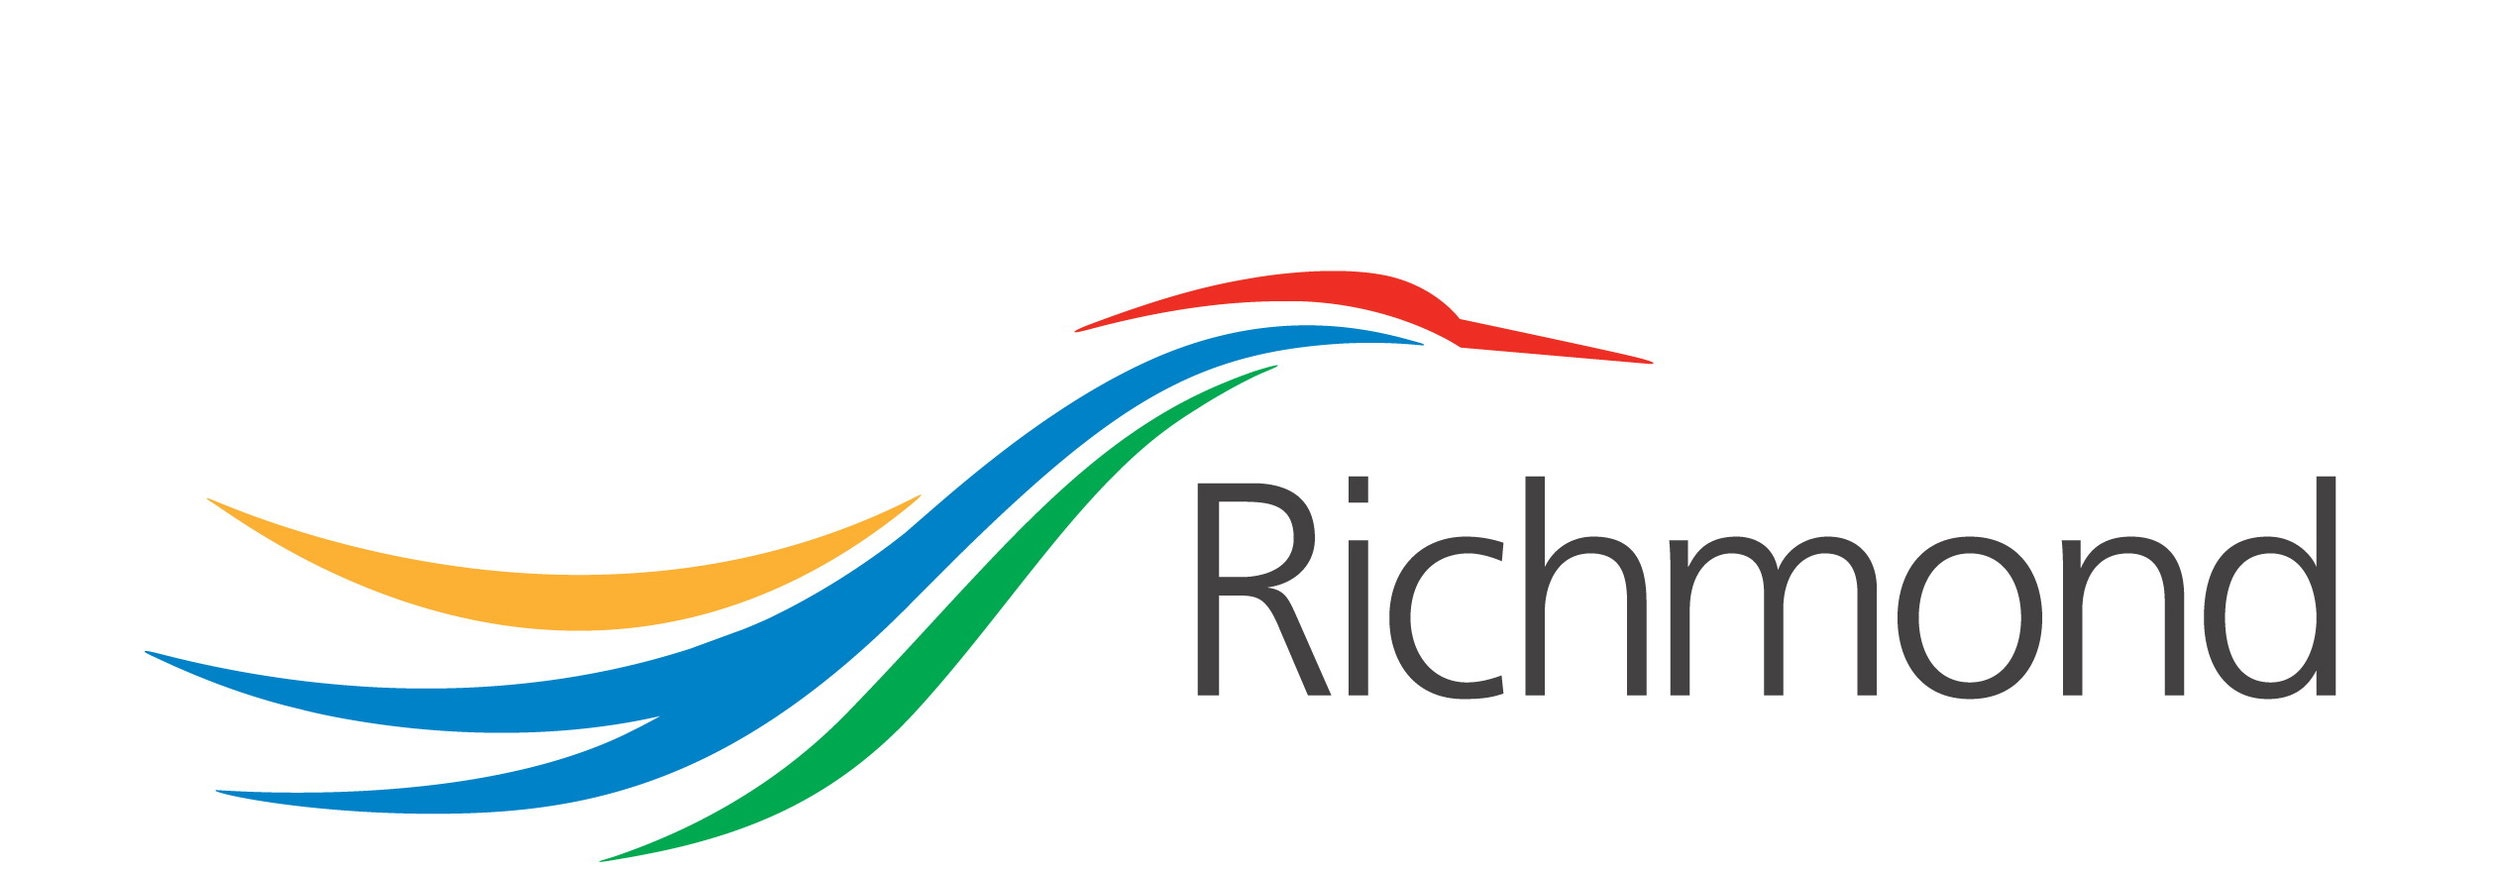 City-of-Richmond_Logo.jpg